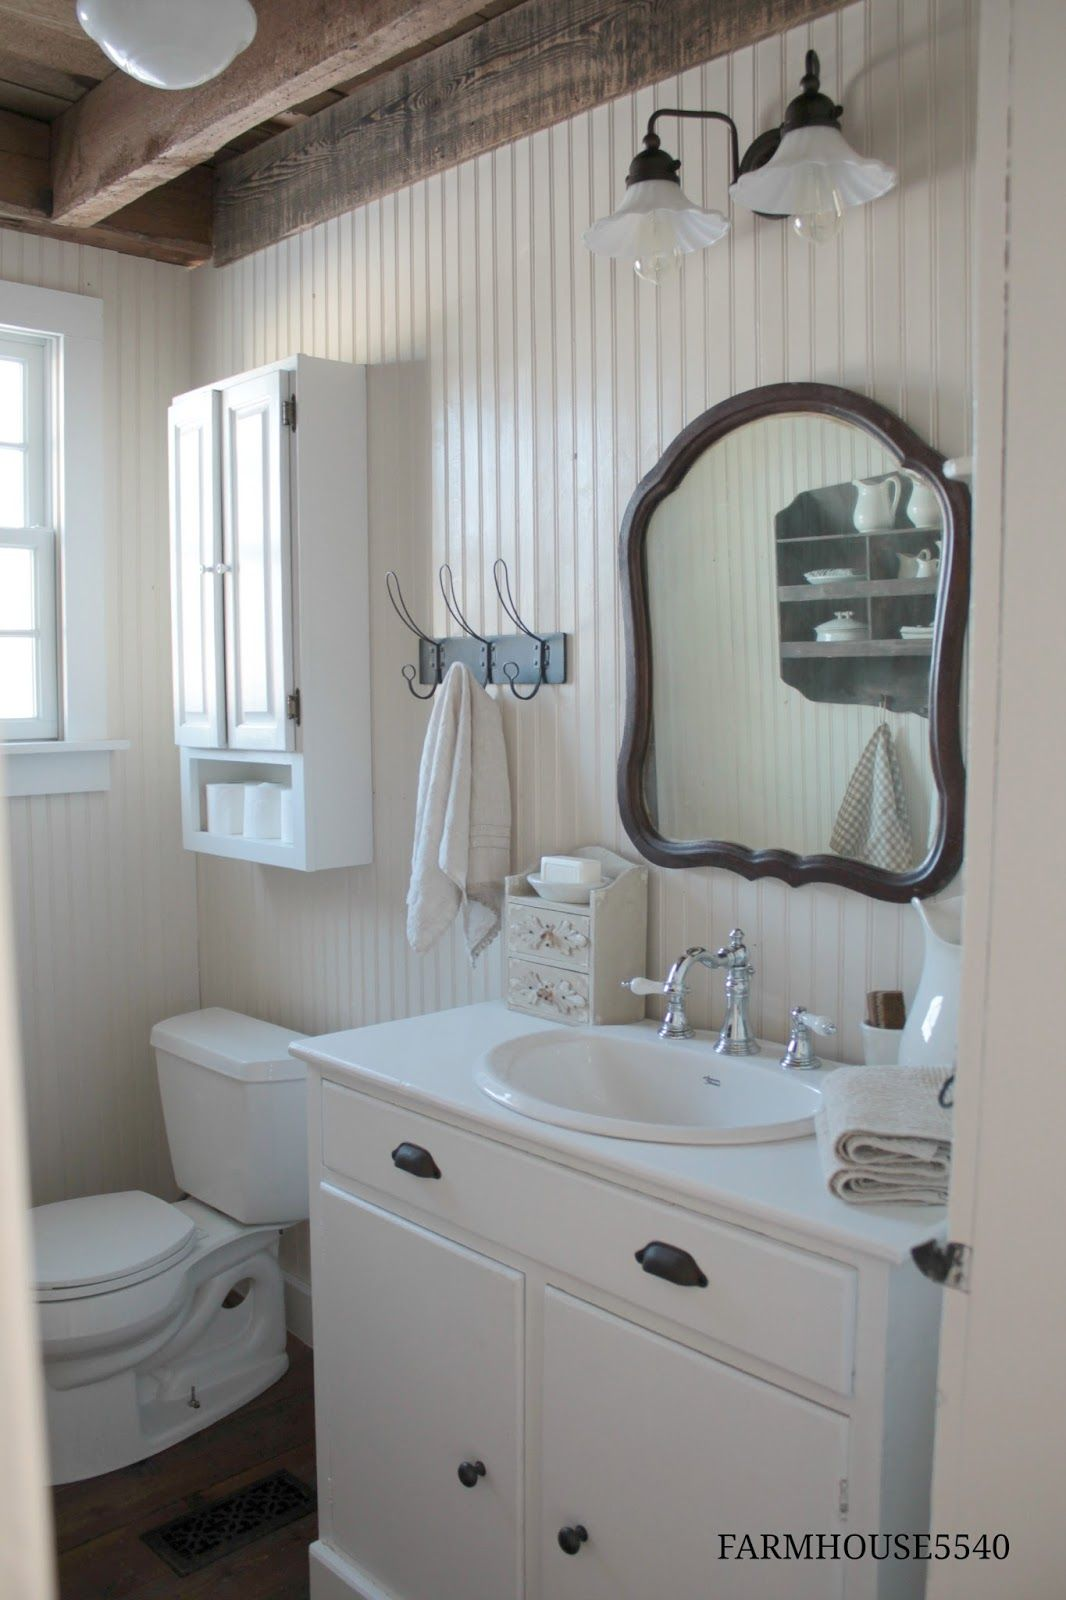 So Here It Is Our Farmhouse Powder Room Even Though